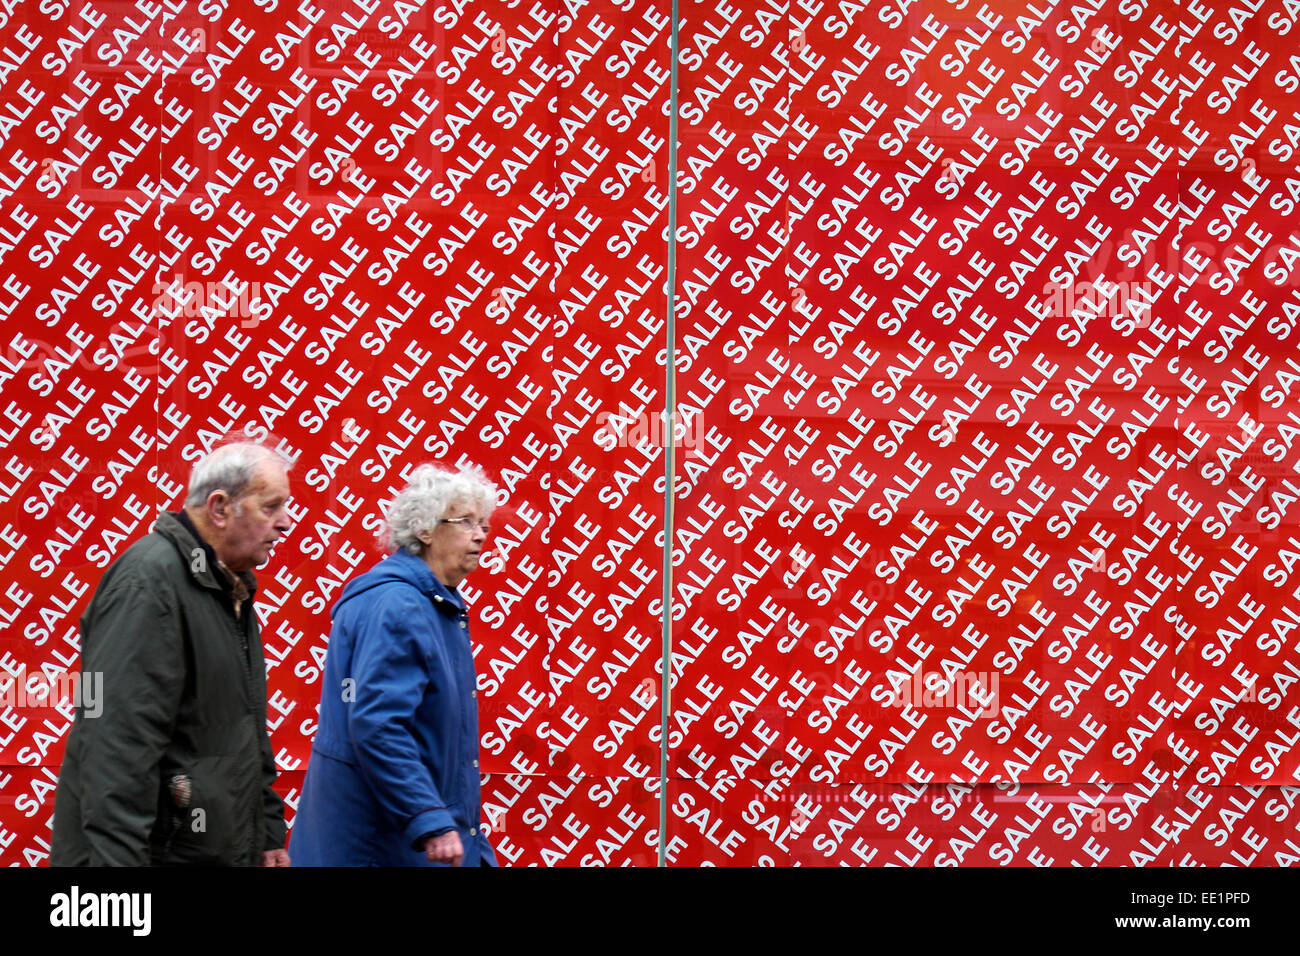 Shoppers walking past a huge sale sign in a shop window. - Stock Image